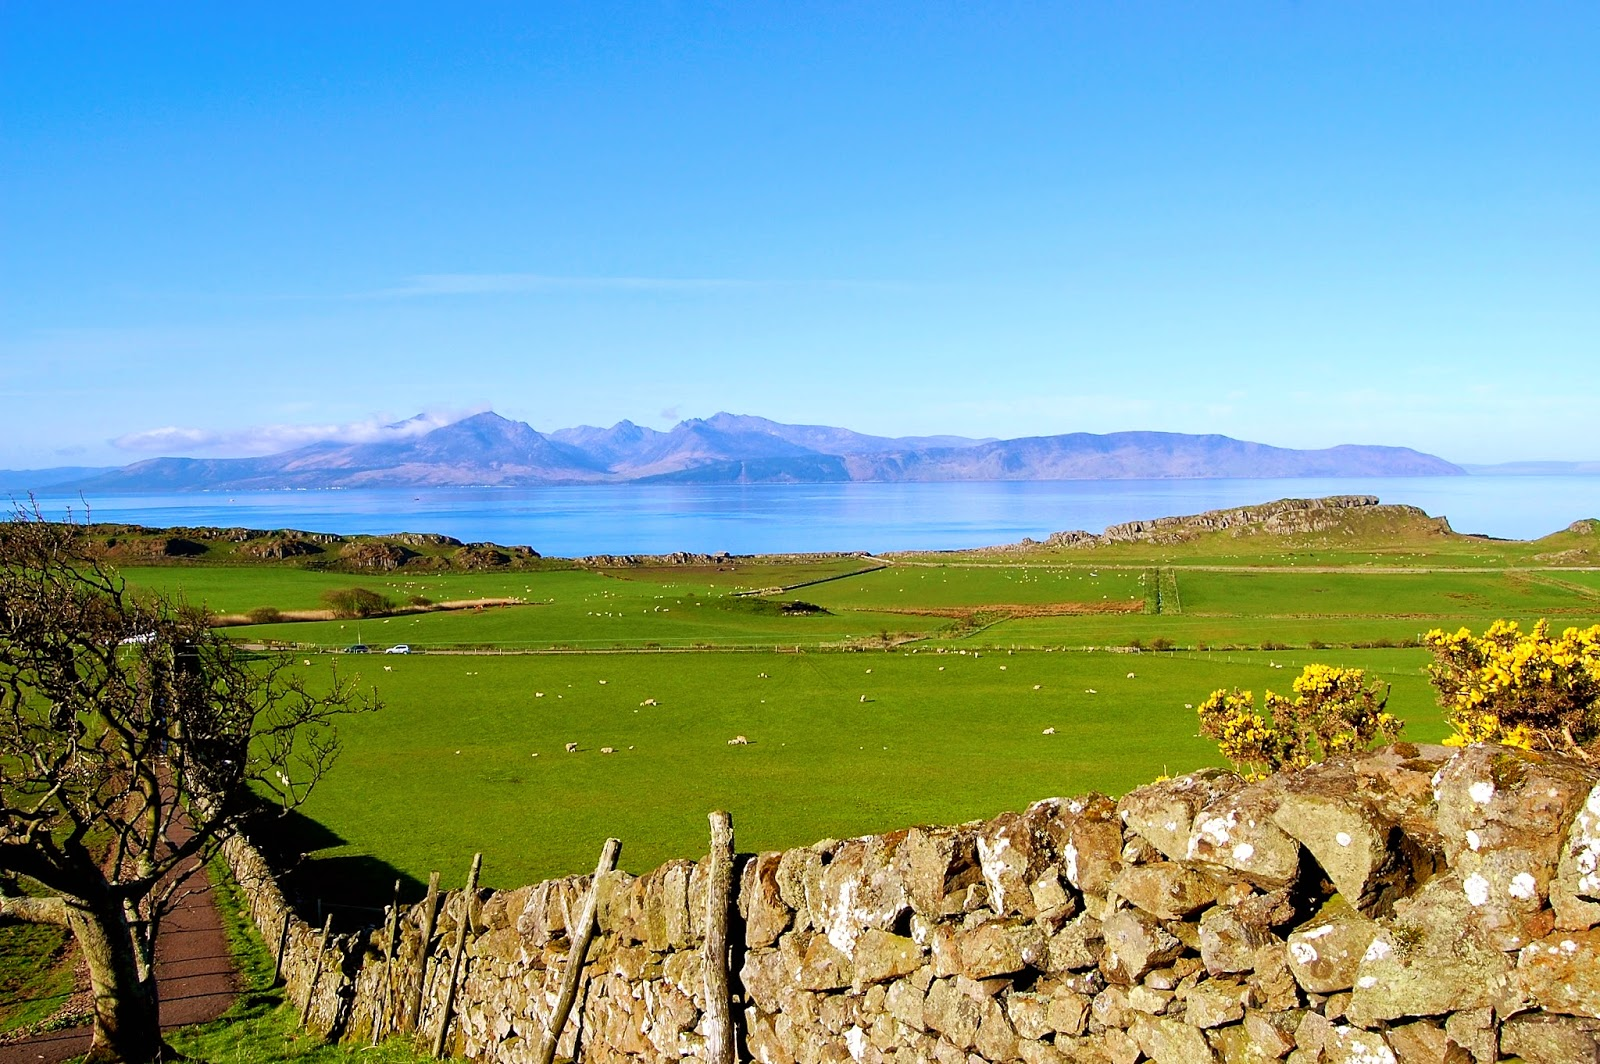 View from the ruins of St. Blane's Church on the Isle of Bute